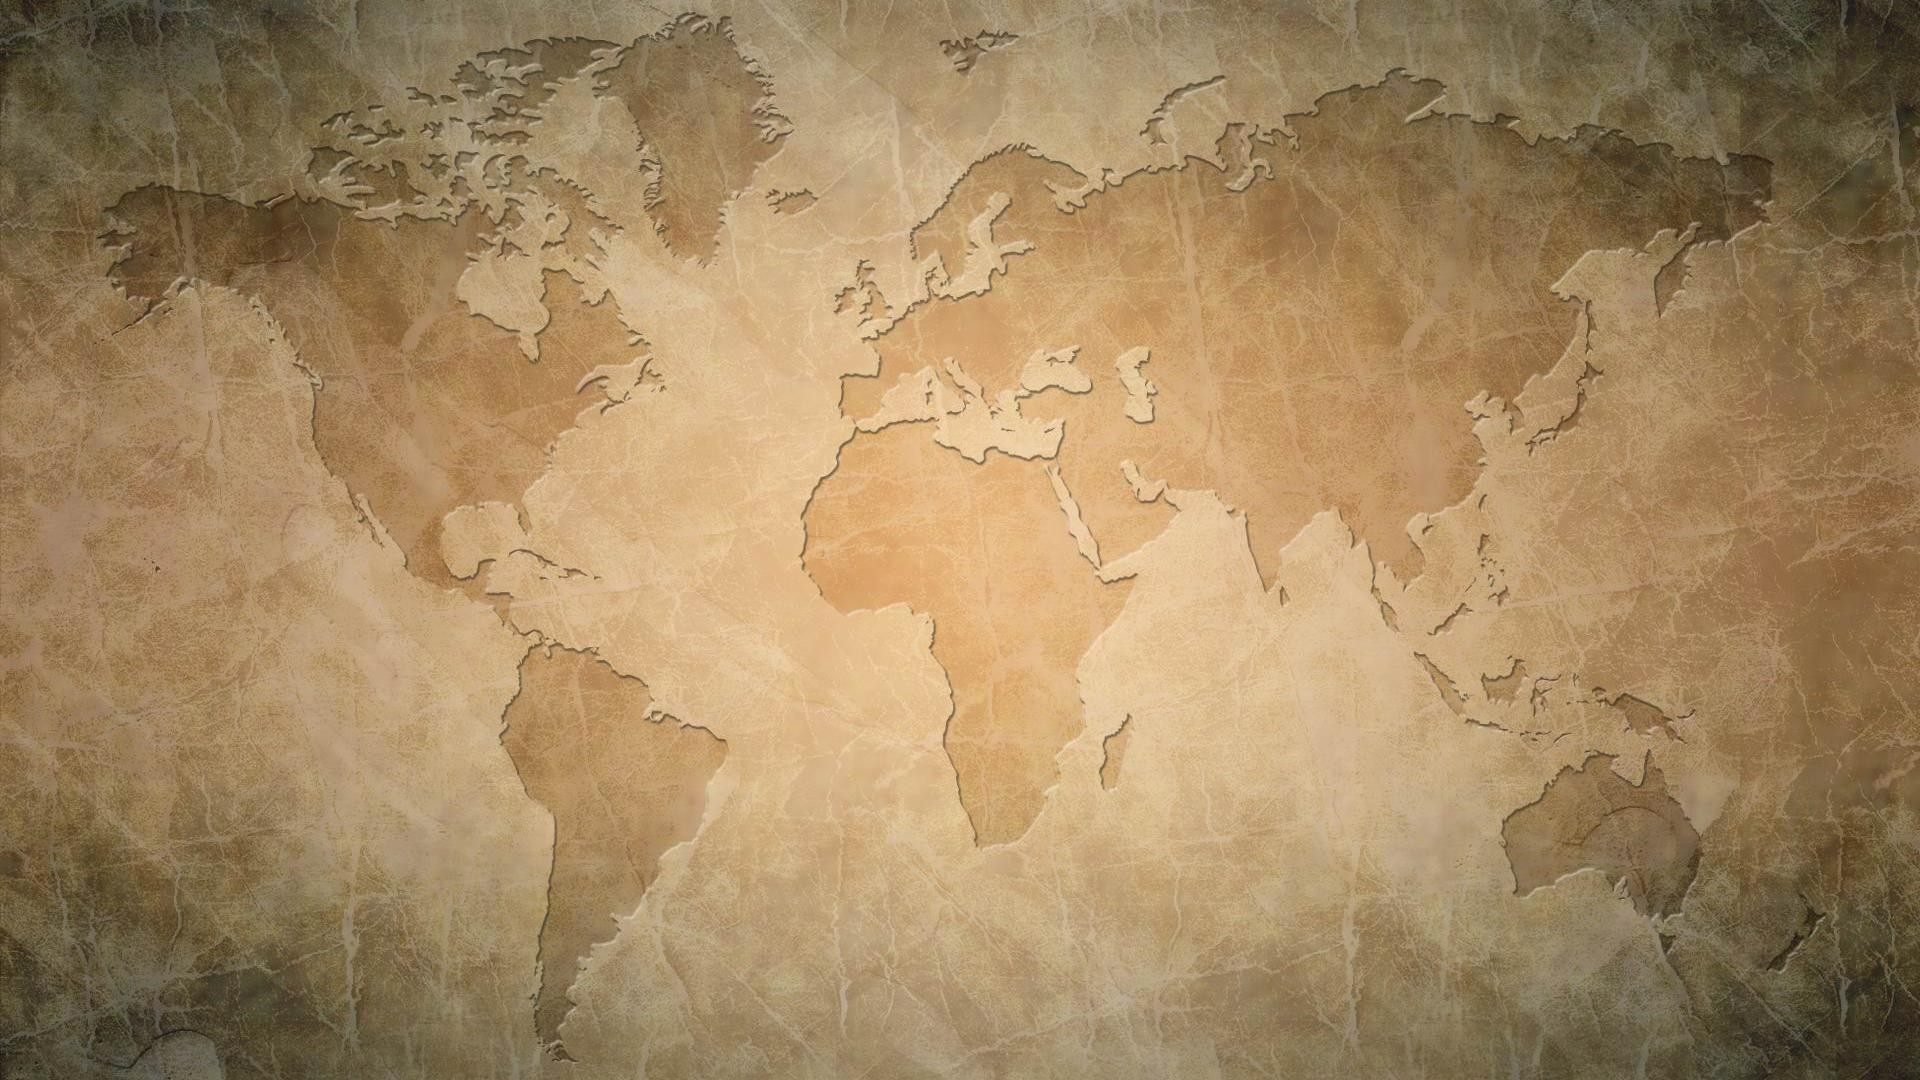 World Map wallpaper ·① Download free amazing backgrounds ...